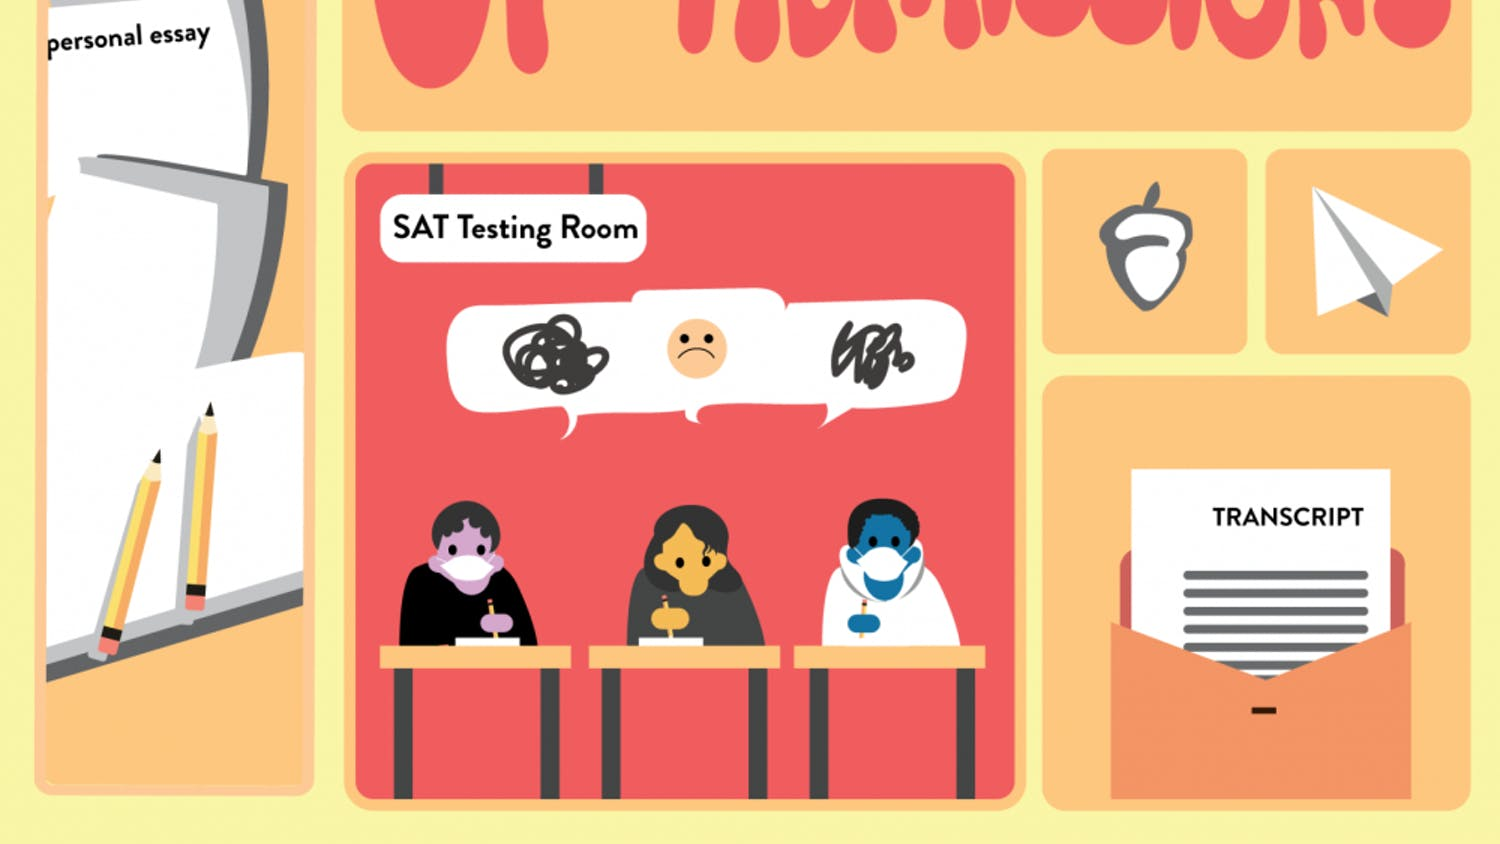 Some students think that no longer requiring standardized tests could be helpful even when there isn't a global pandemic.